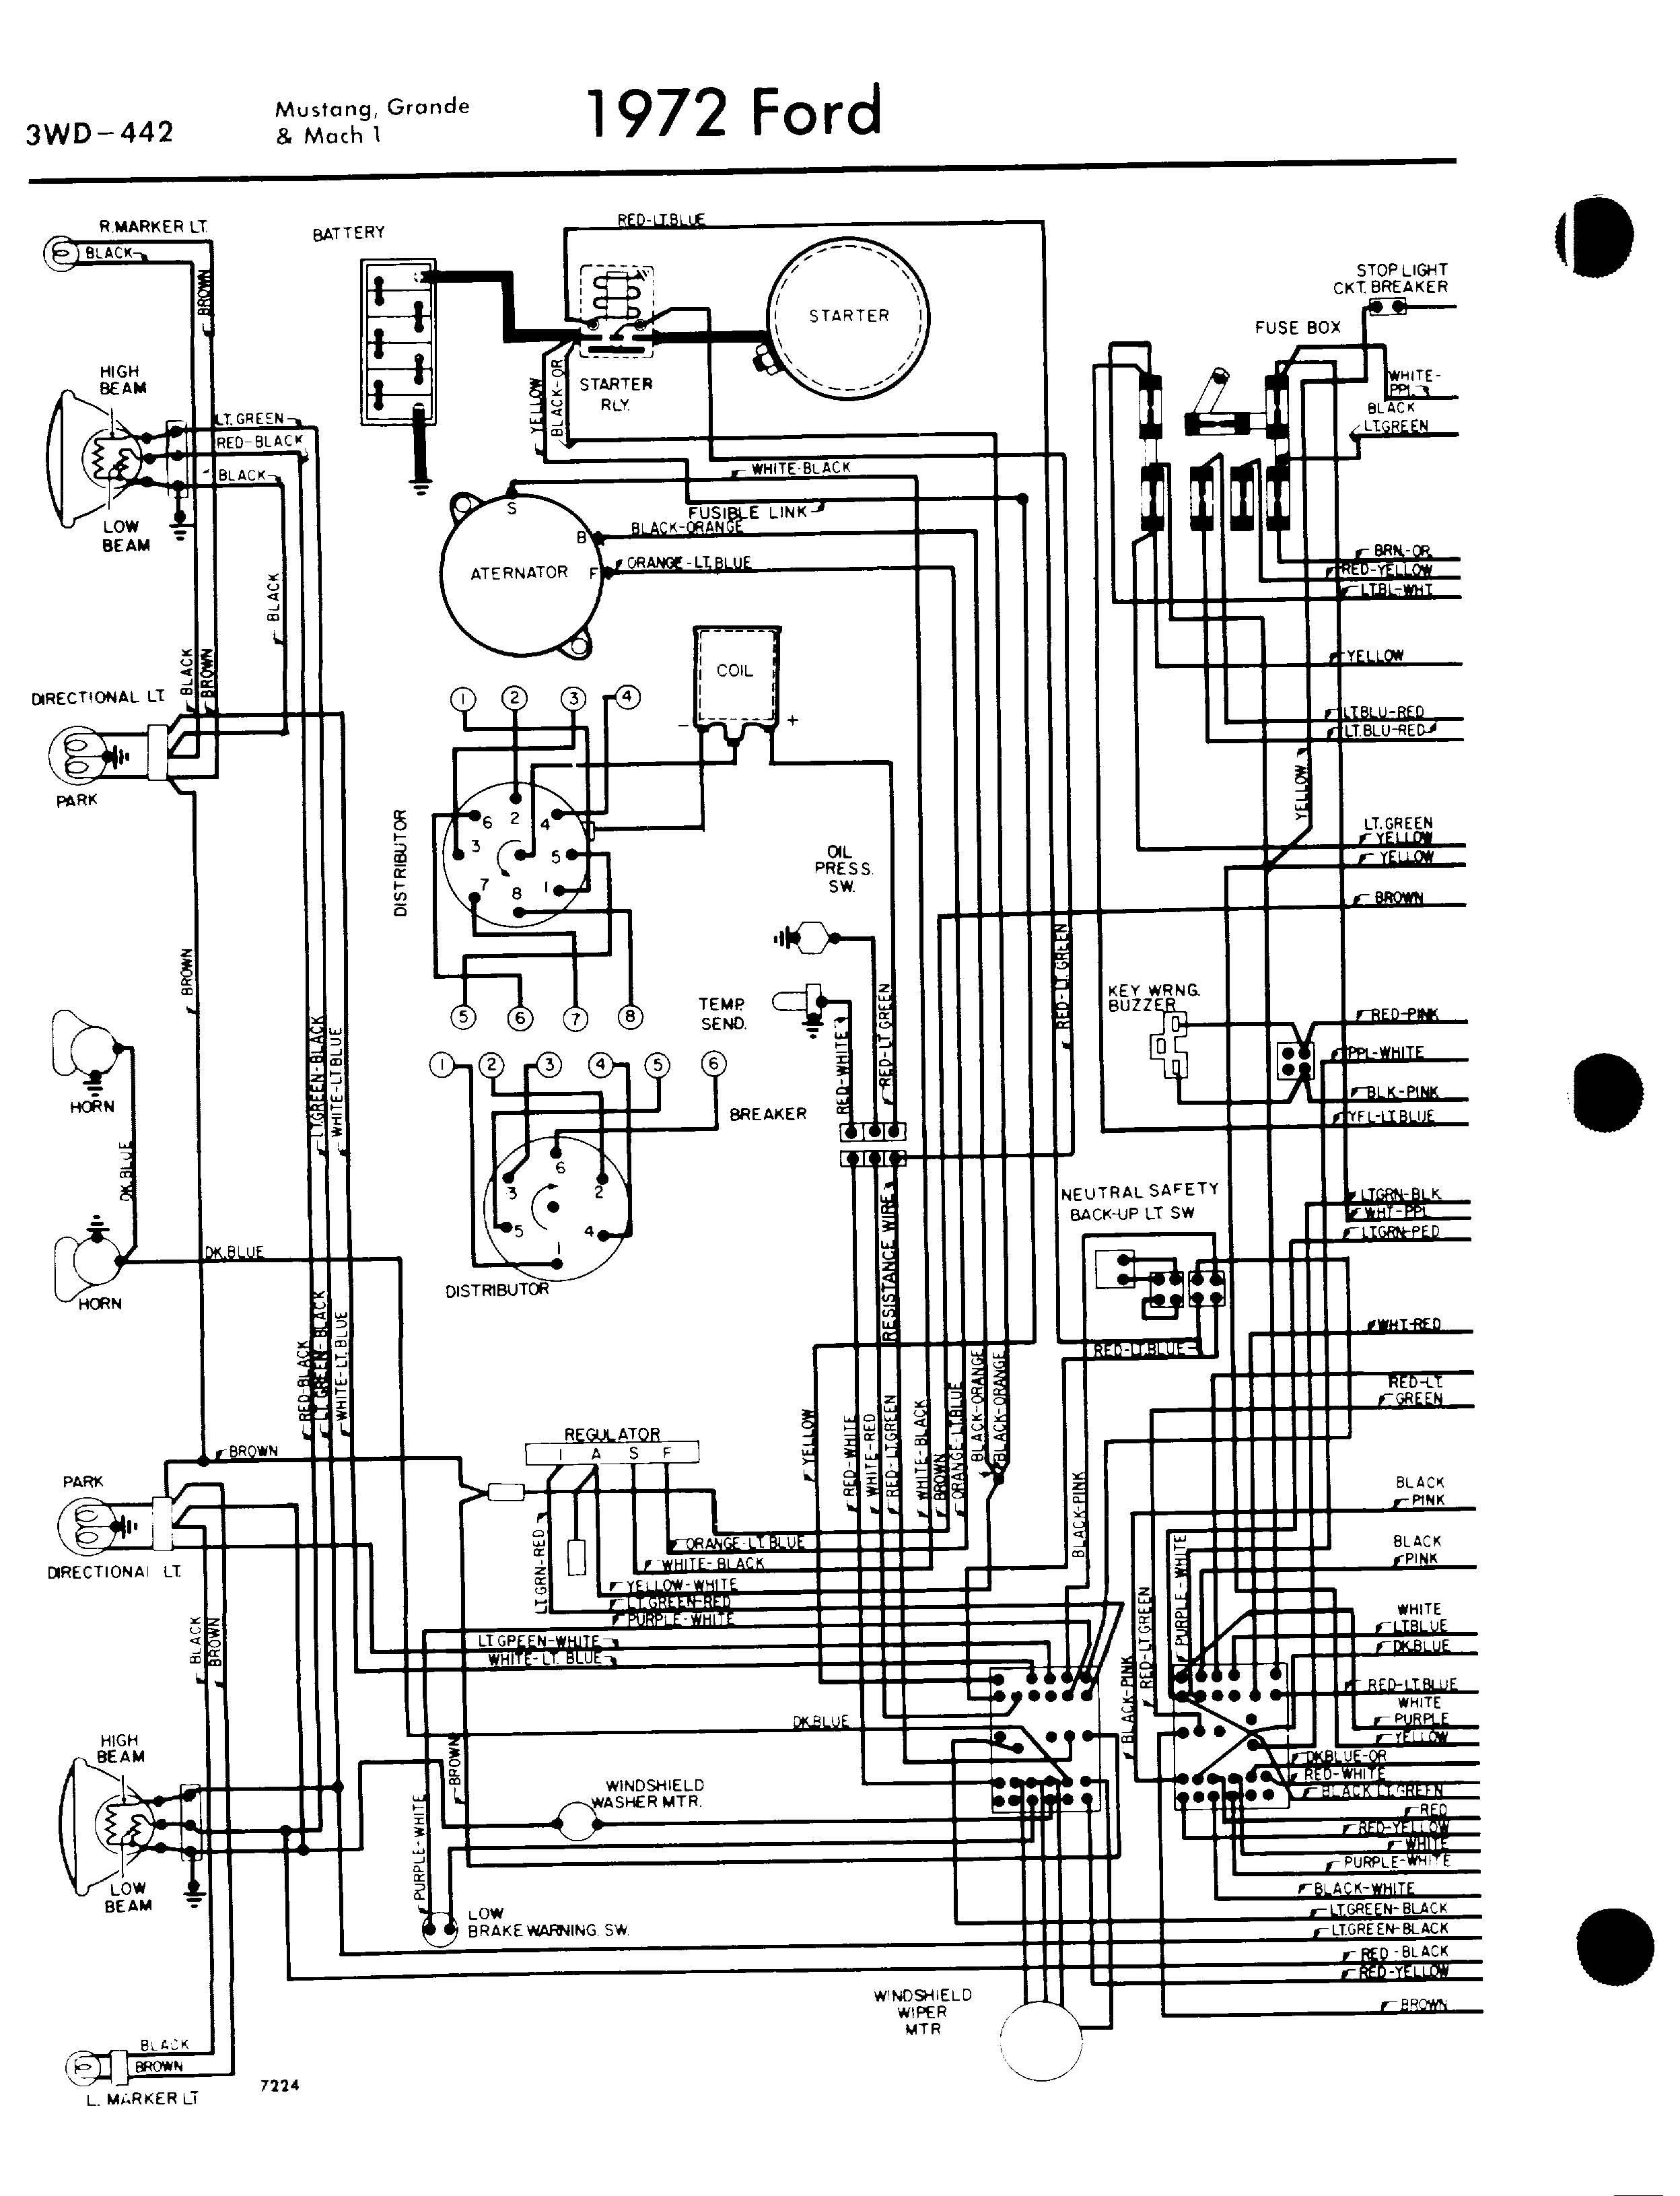 Fantastic Harness Diagram Ford Mustang Ignition Switch Wiring Diagram 1973 Zipur Mohammedshrine Wiring Diagrams Zipurmohammedshrineorg